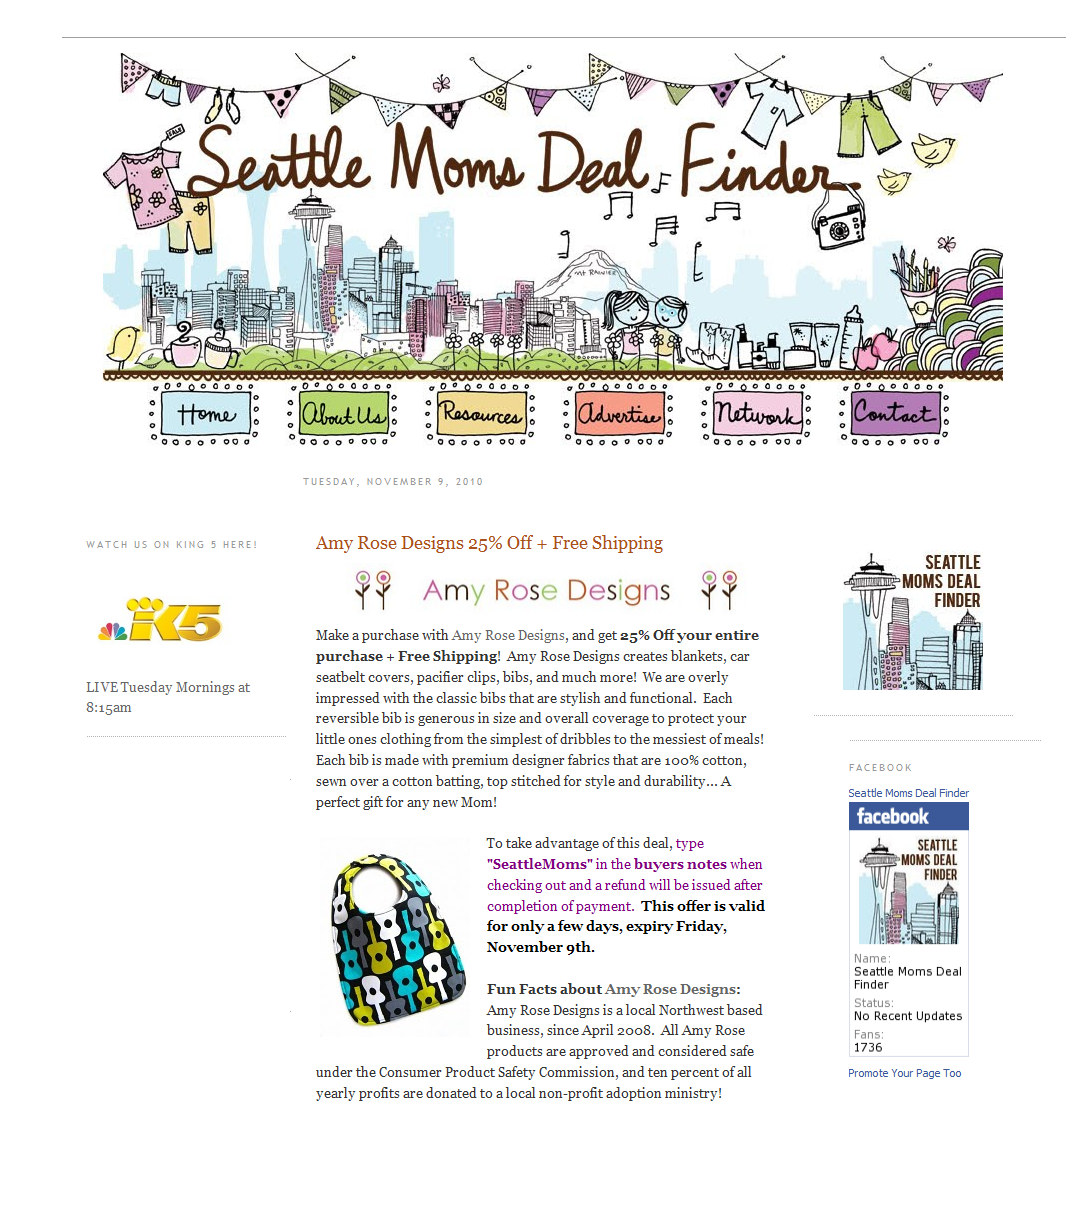 Amy Rose Designs: Seattle Moms Deal Finders King 5 News